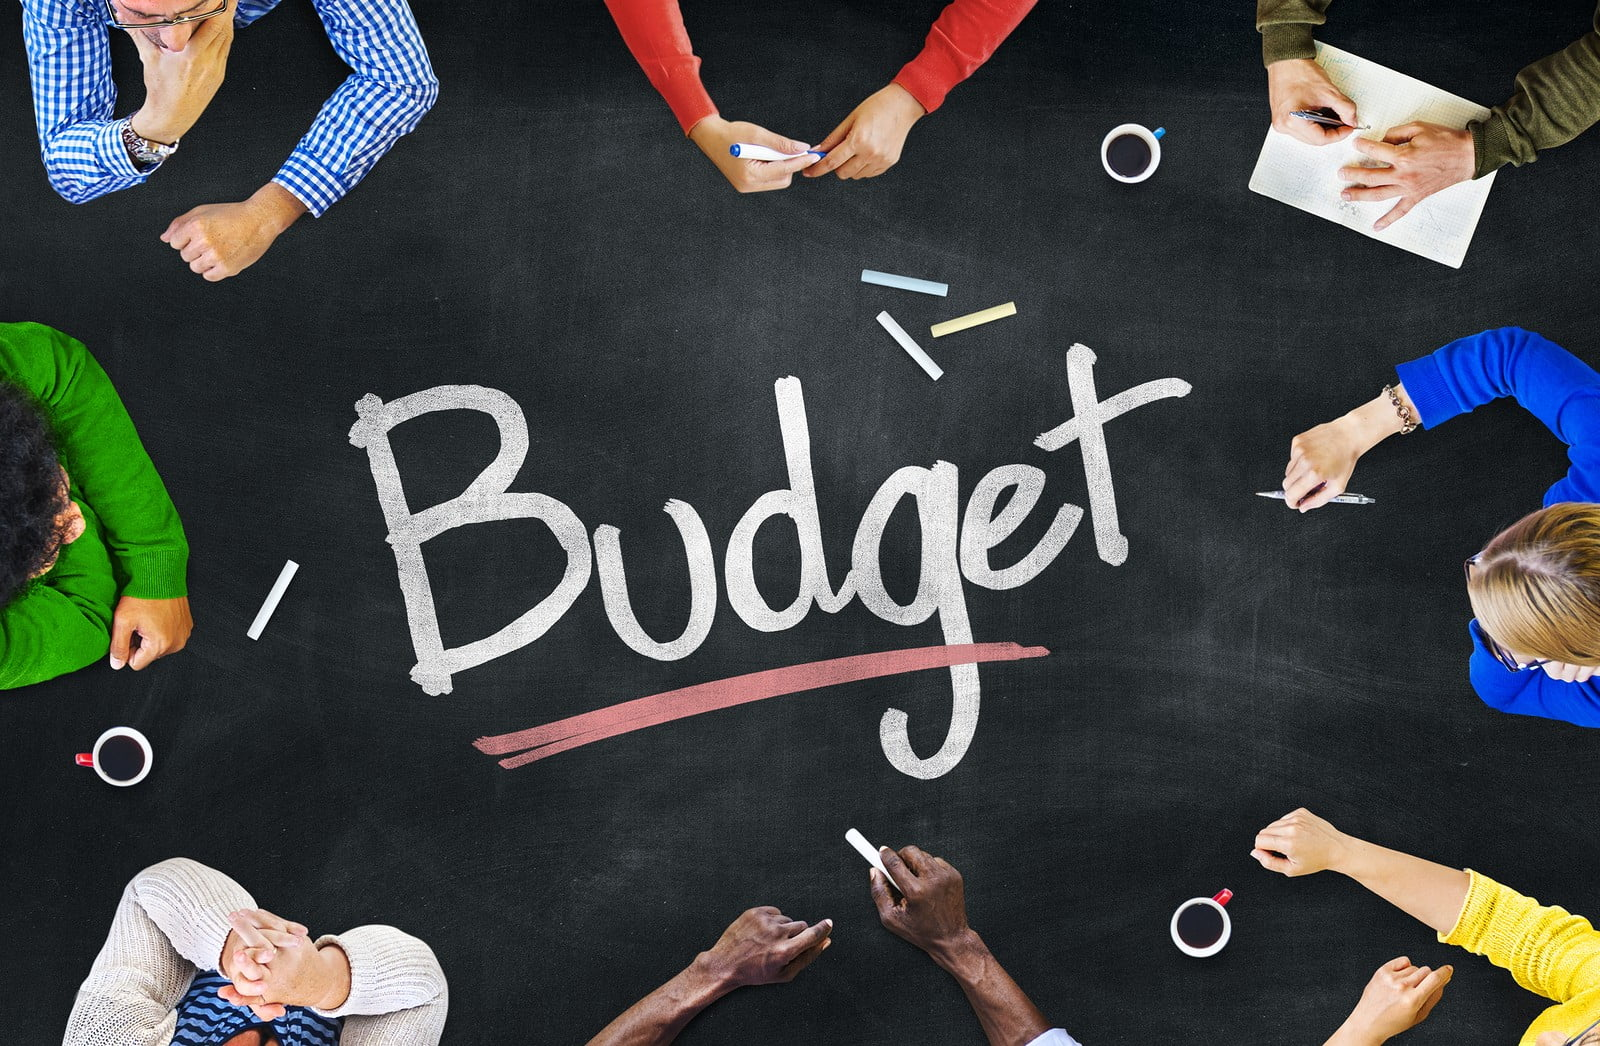 5 Ways to Market Your Small Business on a Shoe String Budget